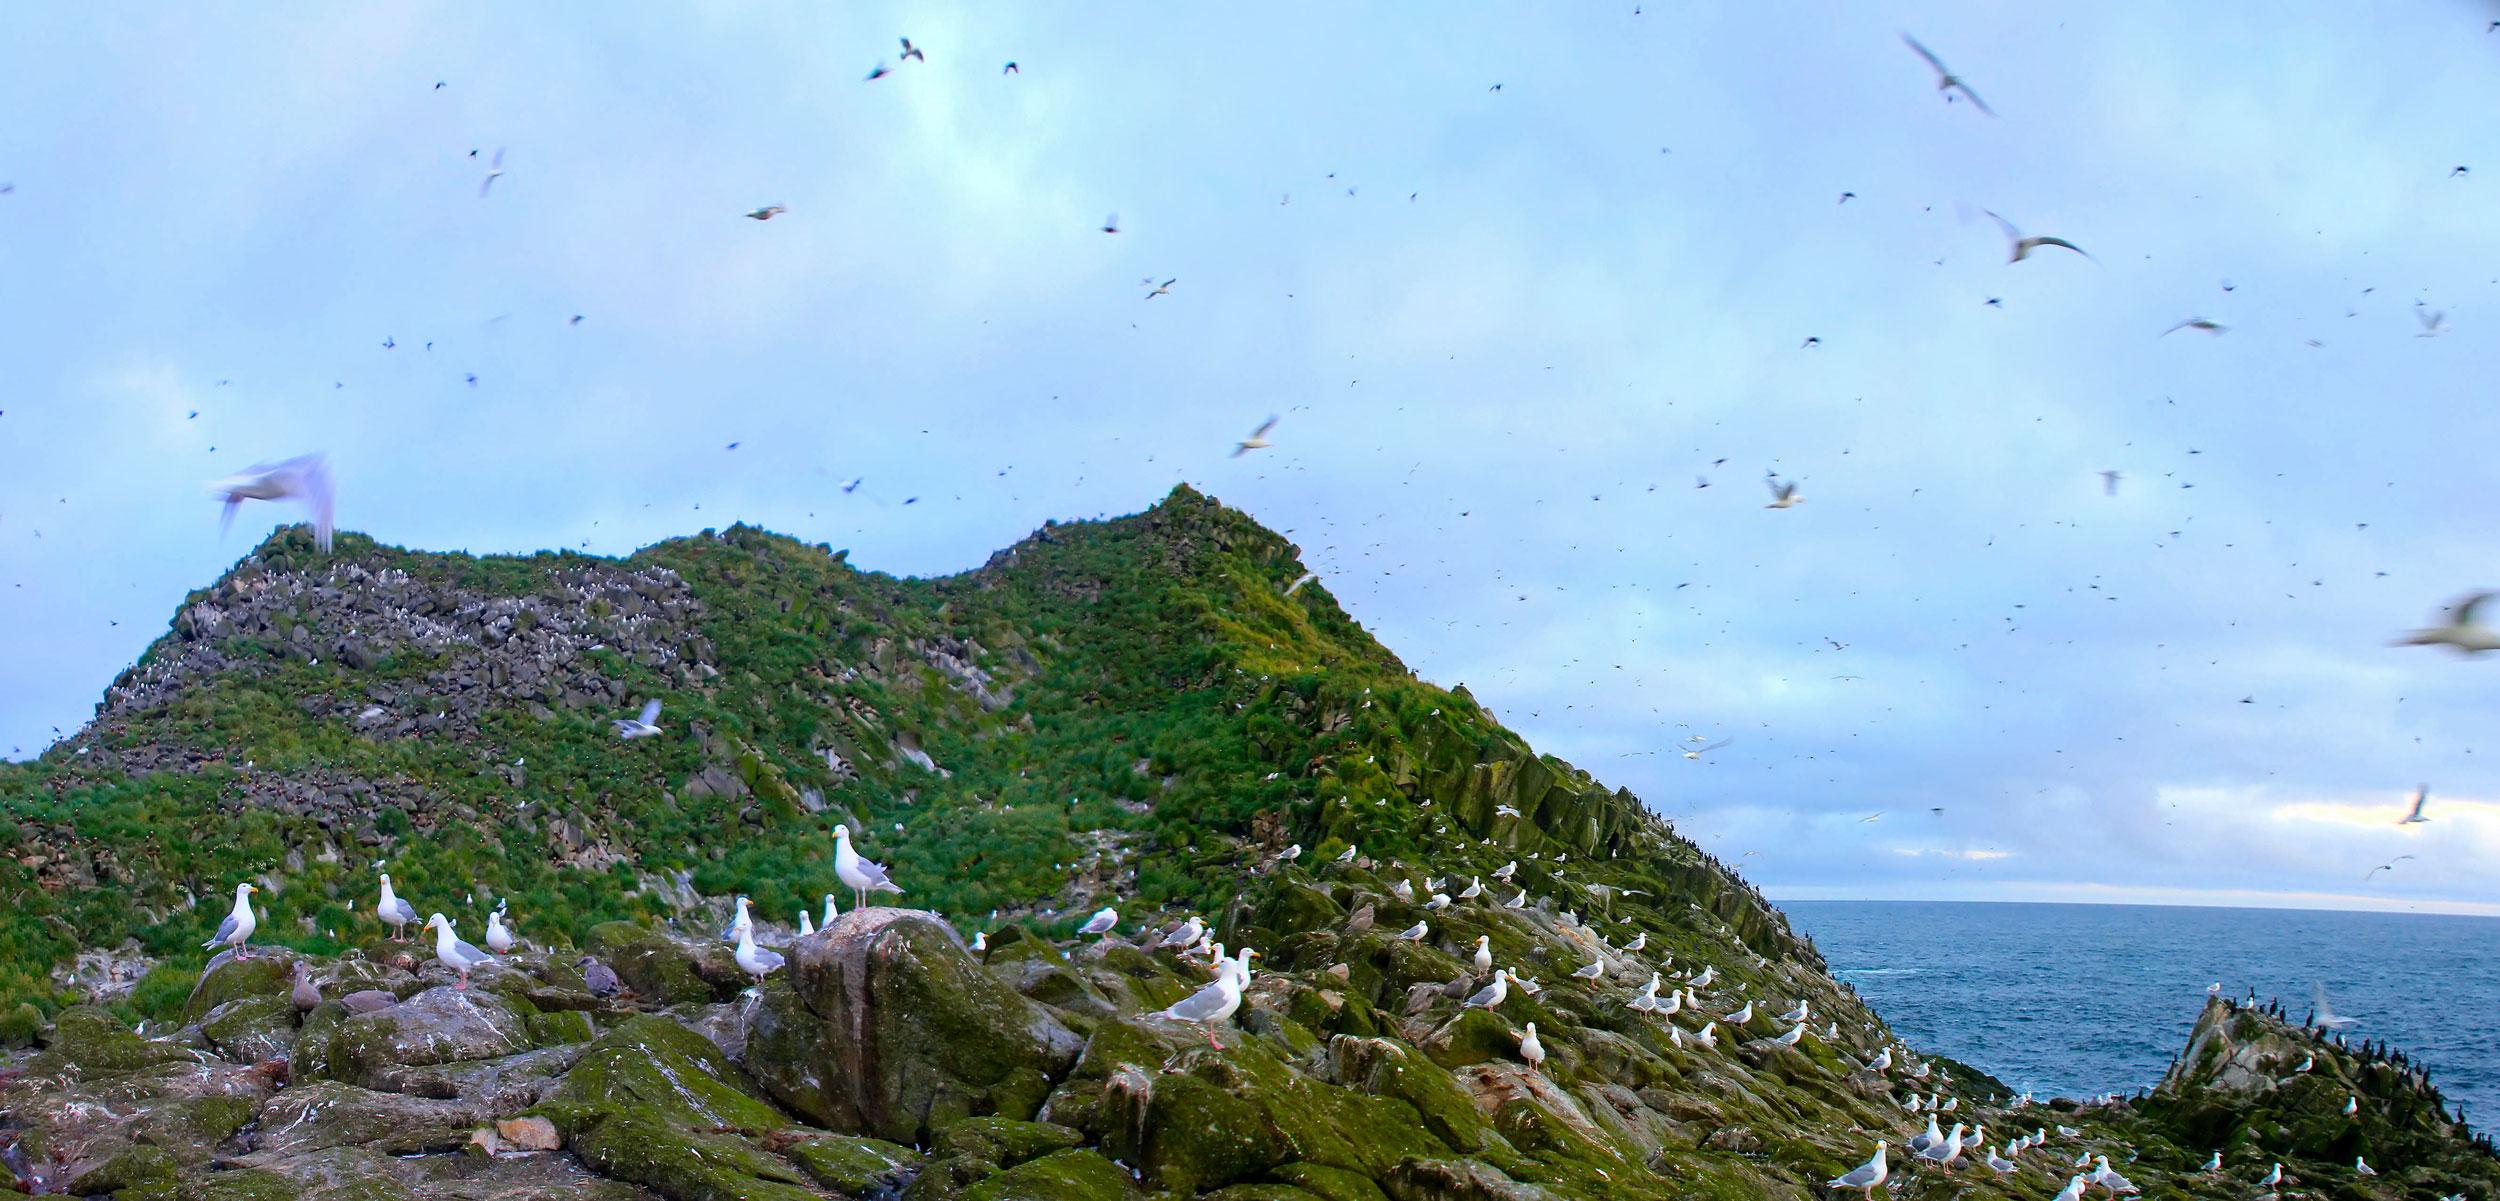 birds flocking in the Aleutian Islands